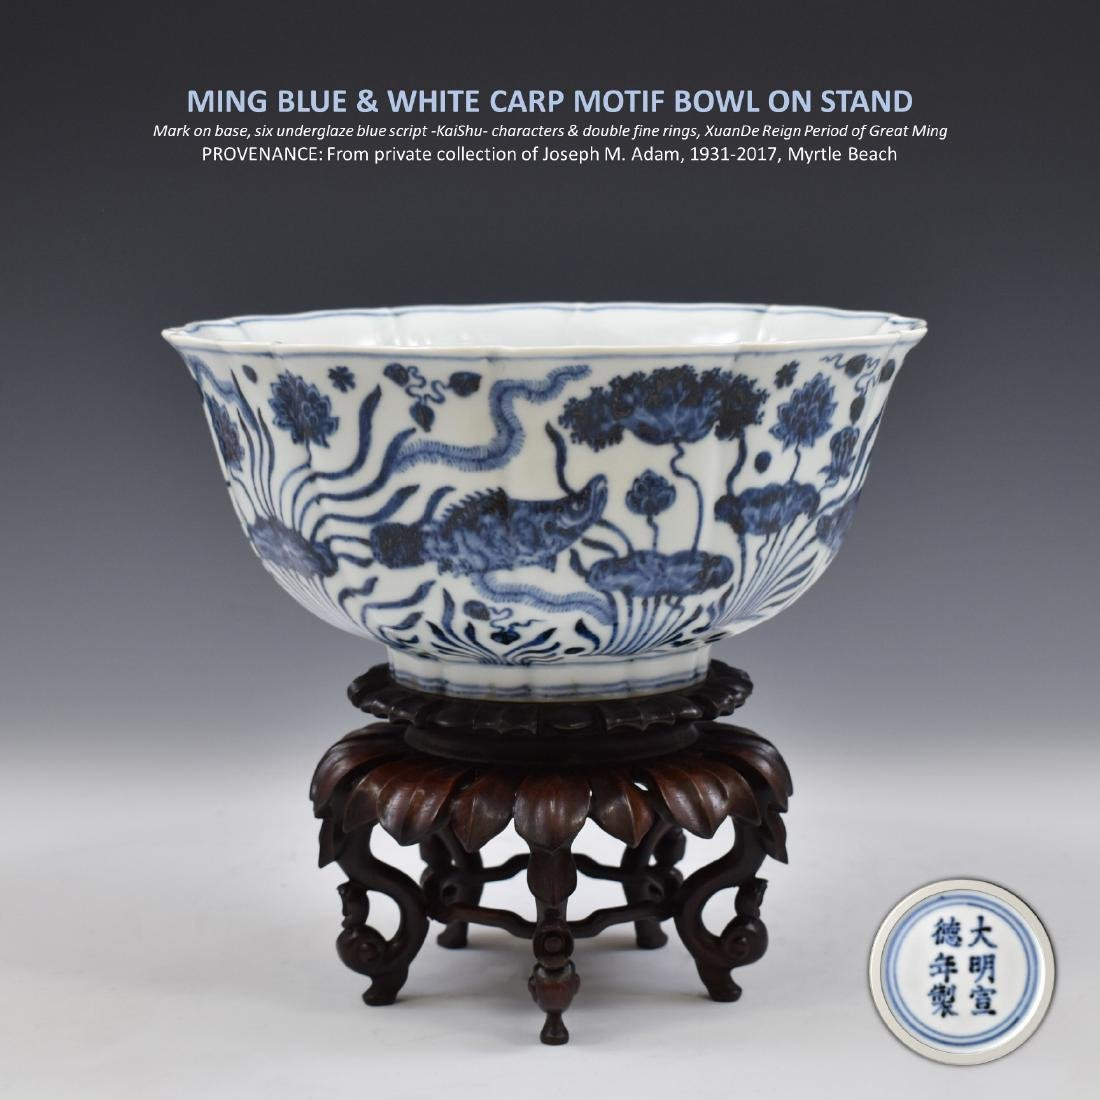 MING BLUE & WHITE CARP MOTIF BOWL ON STAND